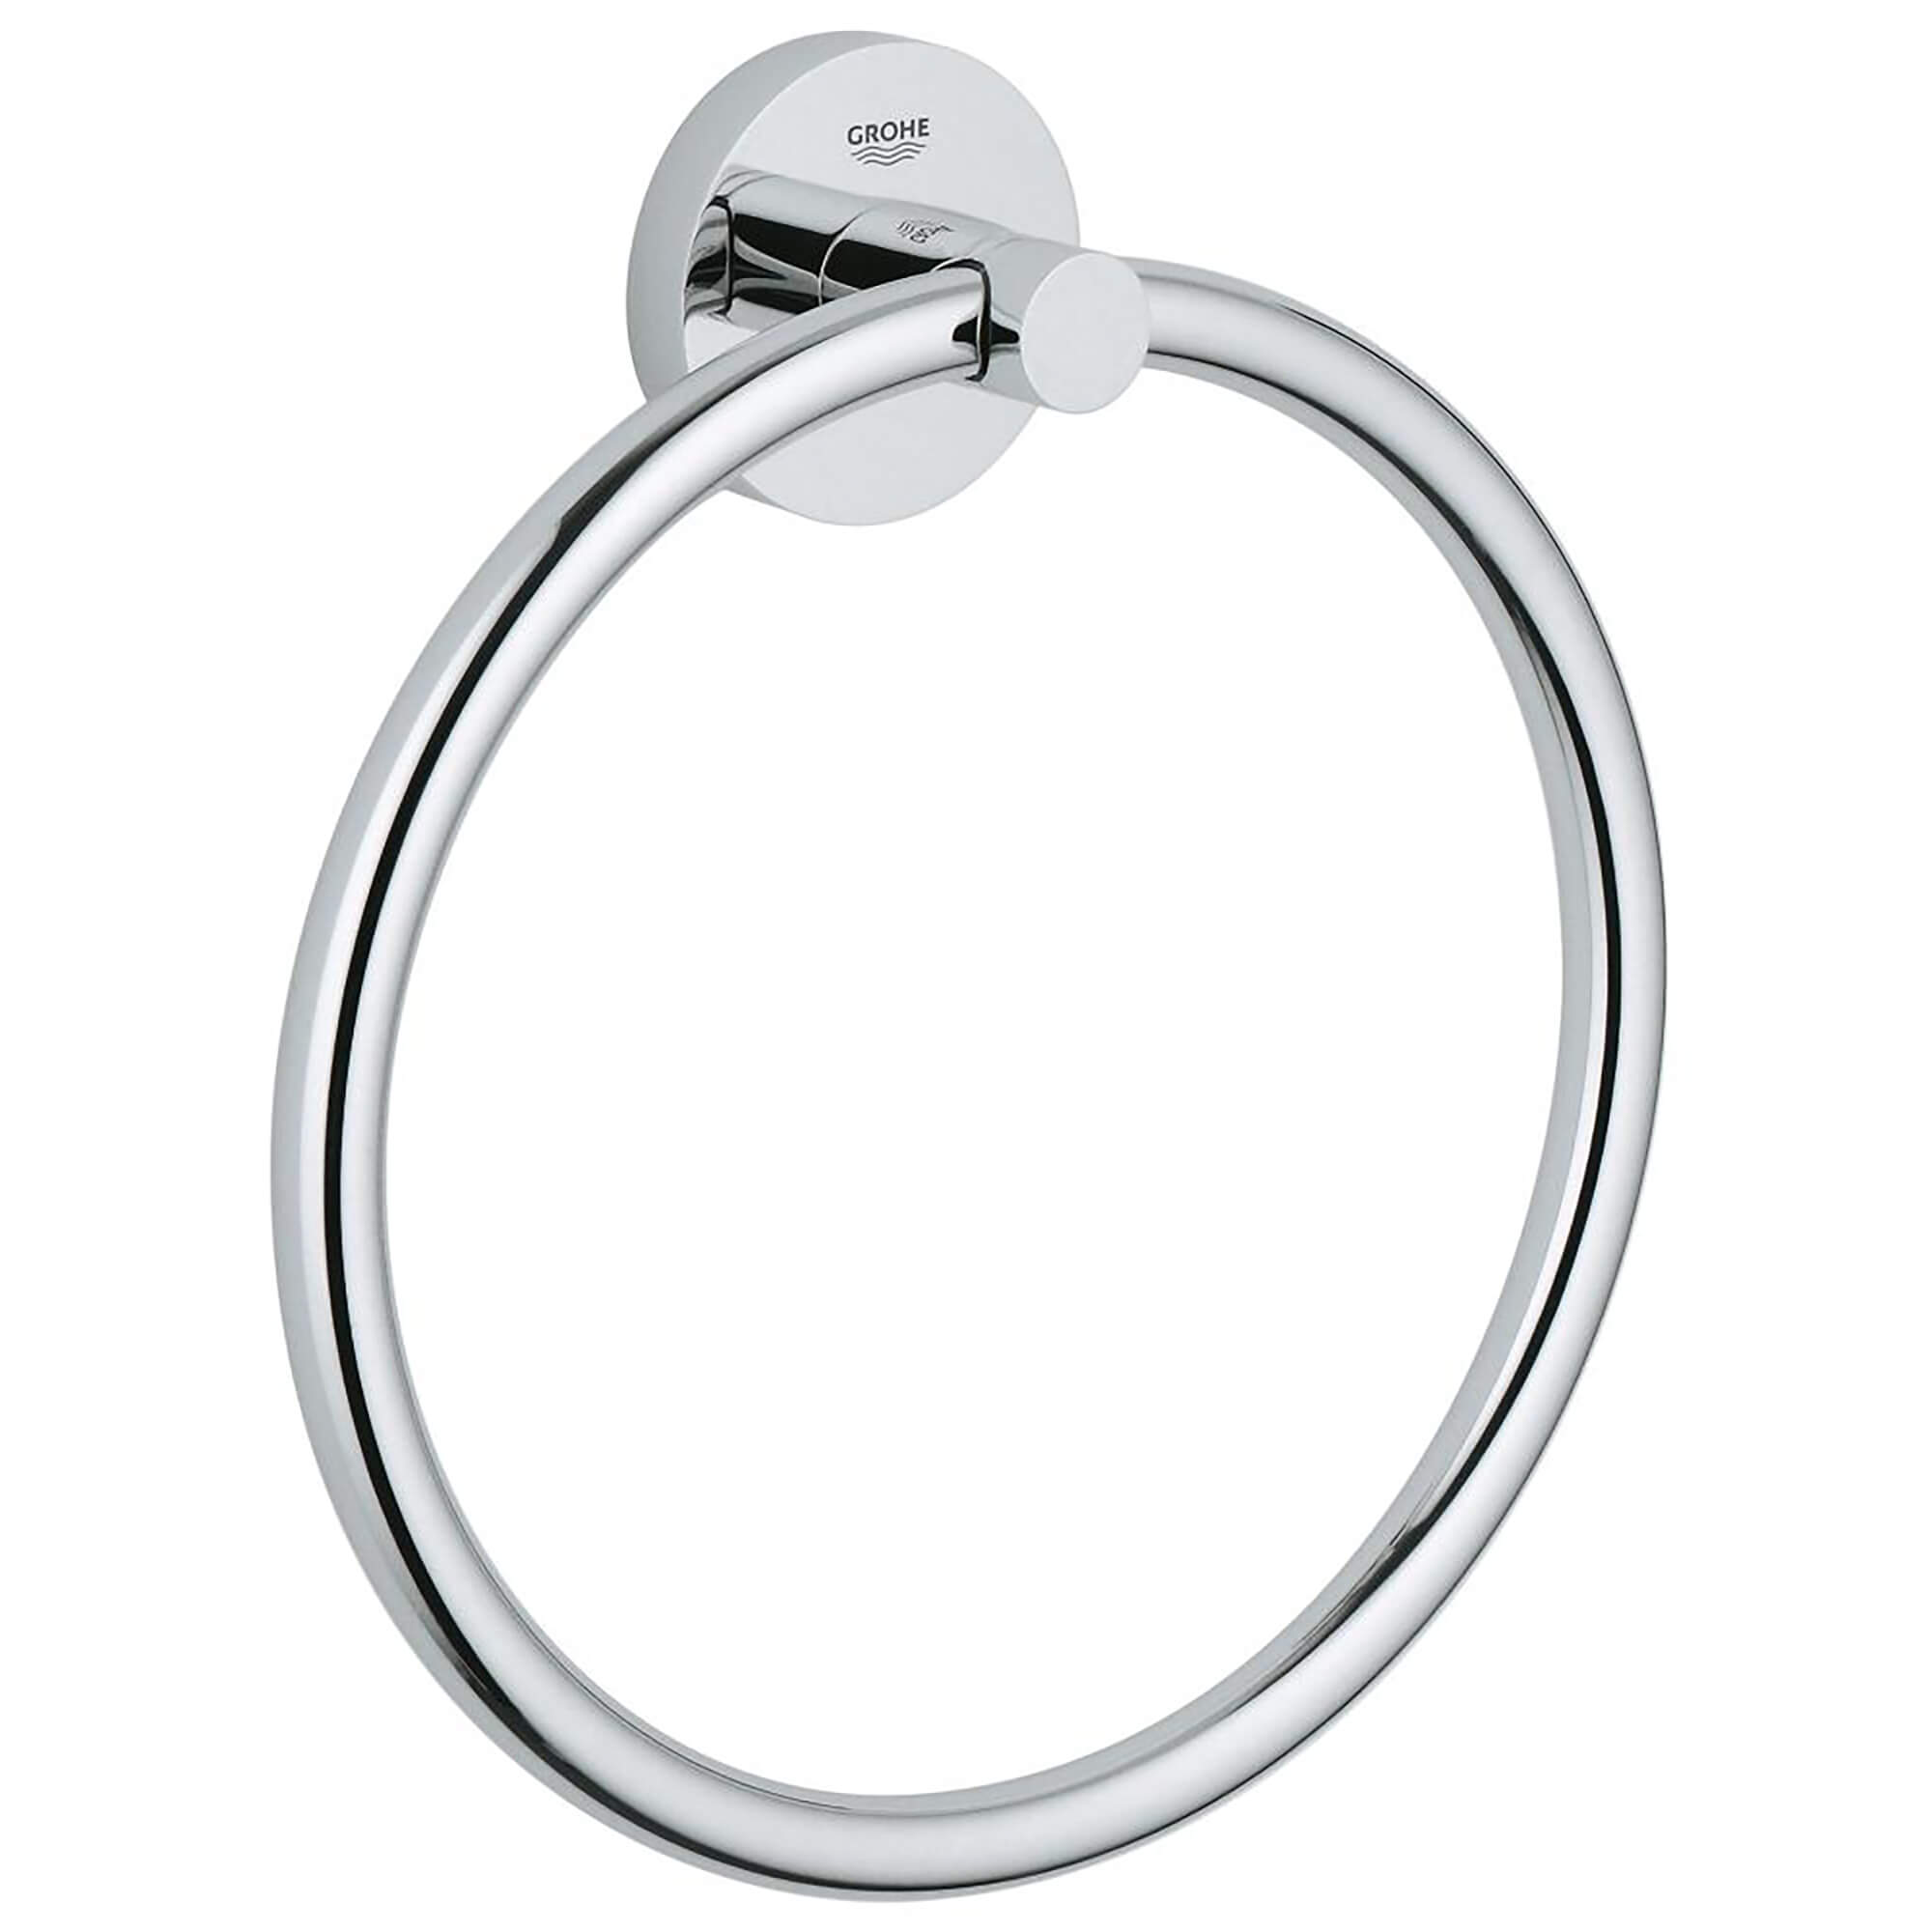 Porte serviettes GROHE CHROME